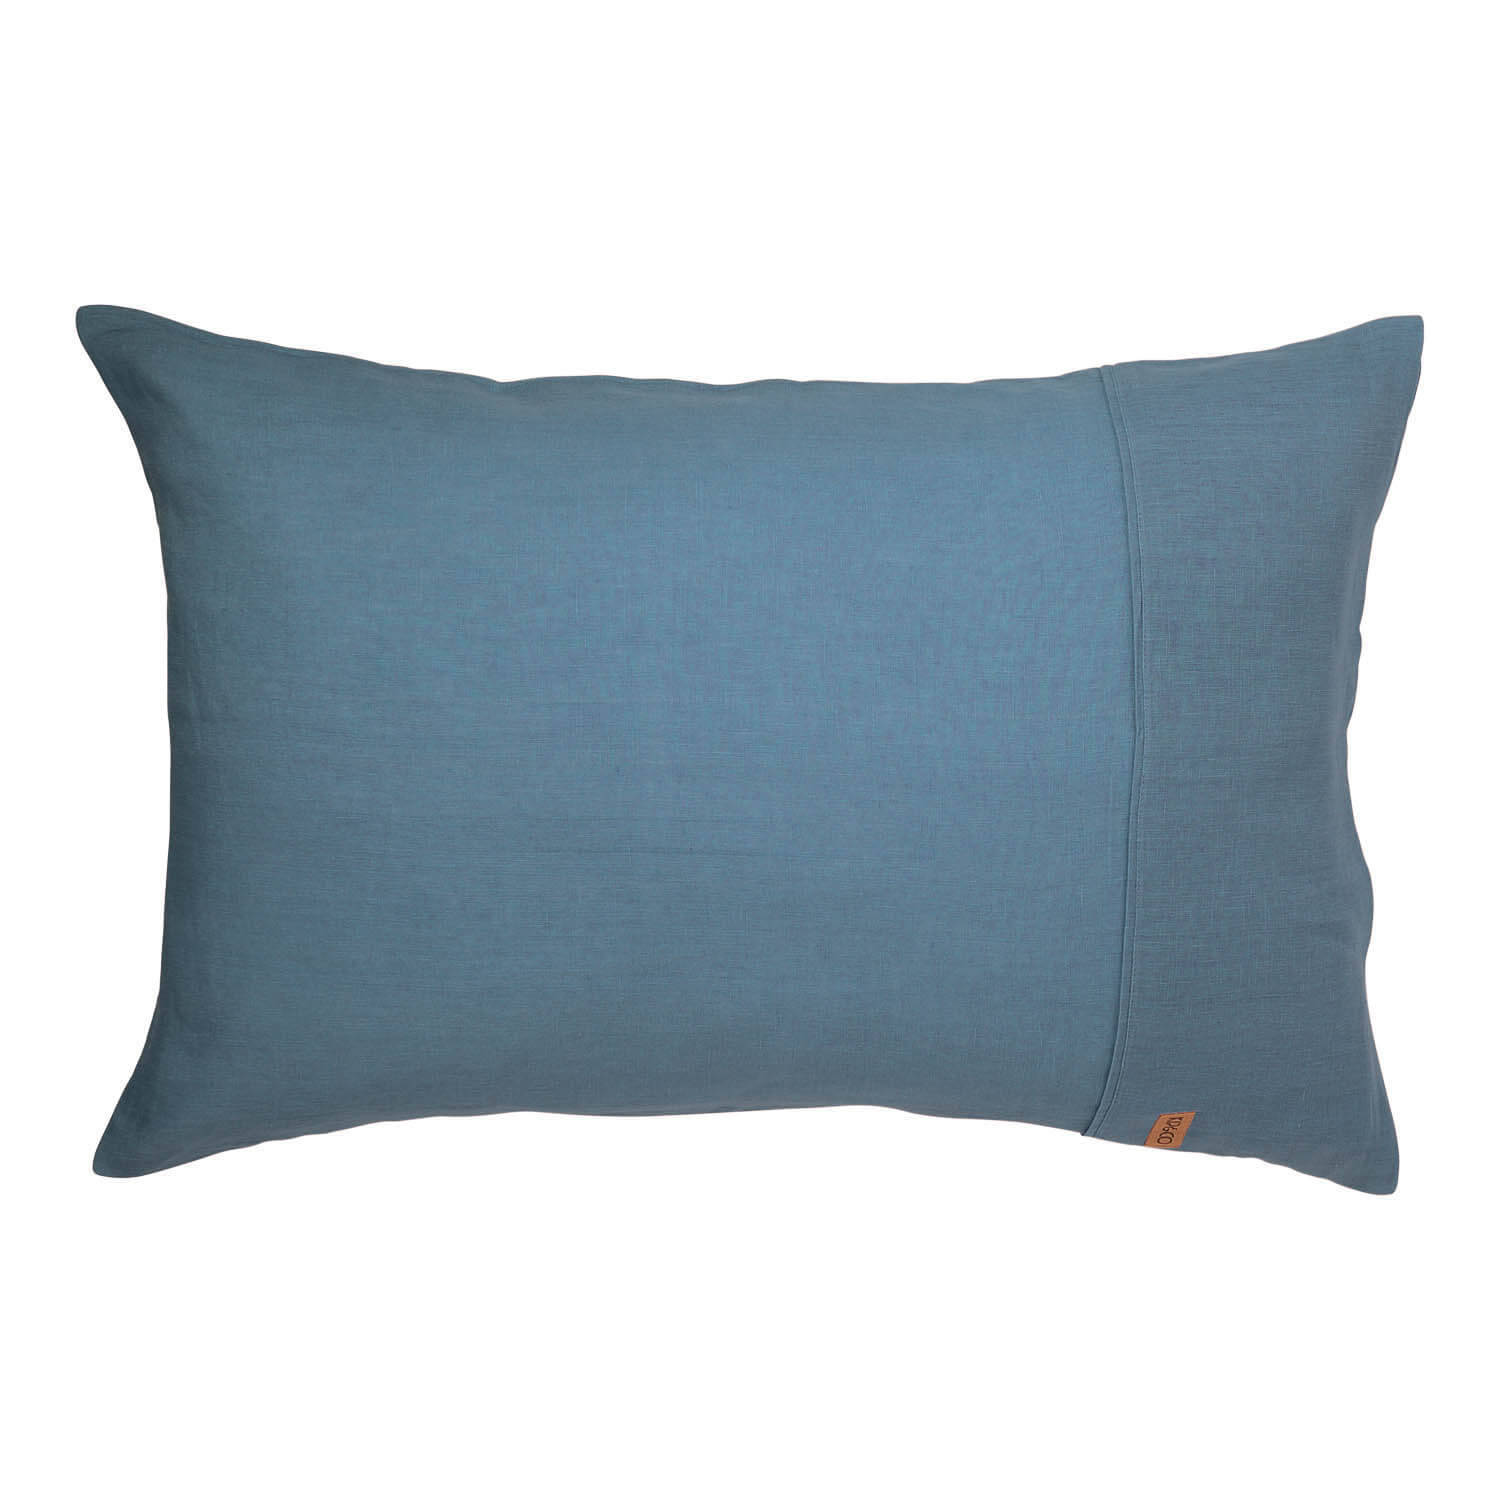 Kip and co slate French linen 2P pillowcase set | The Home Maven